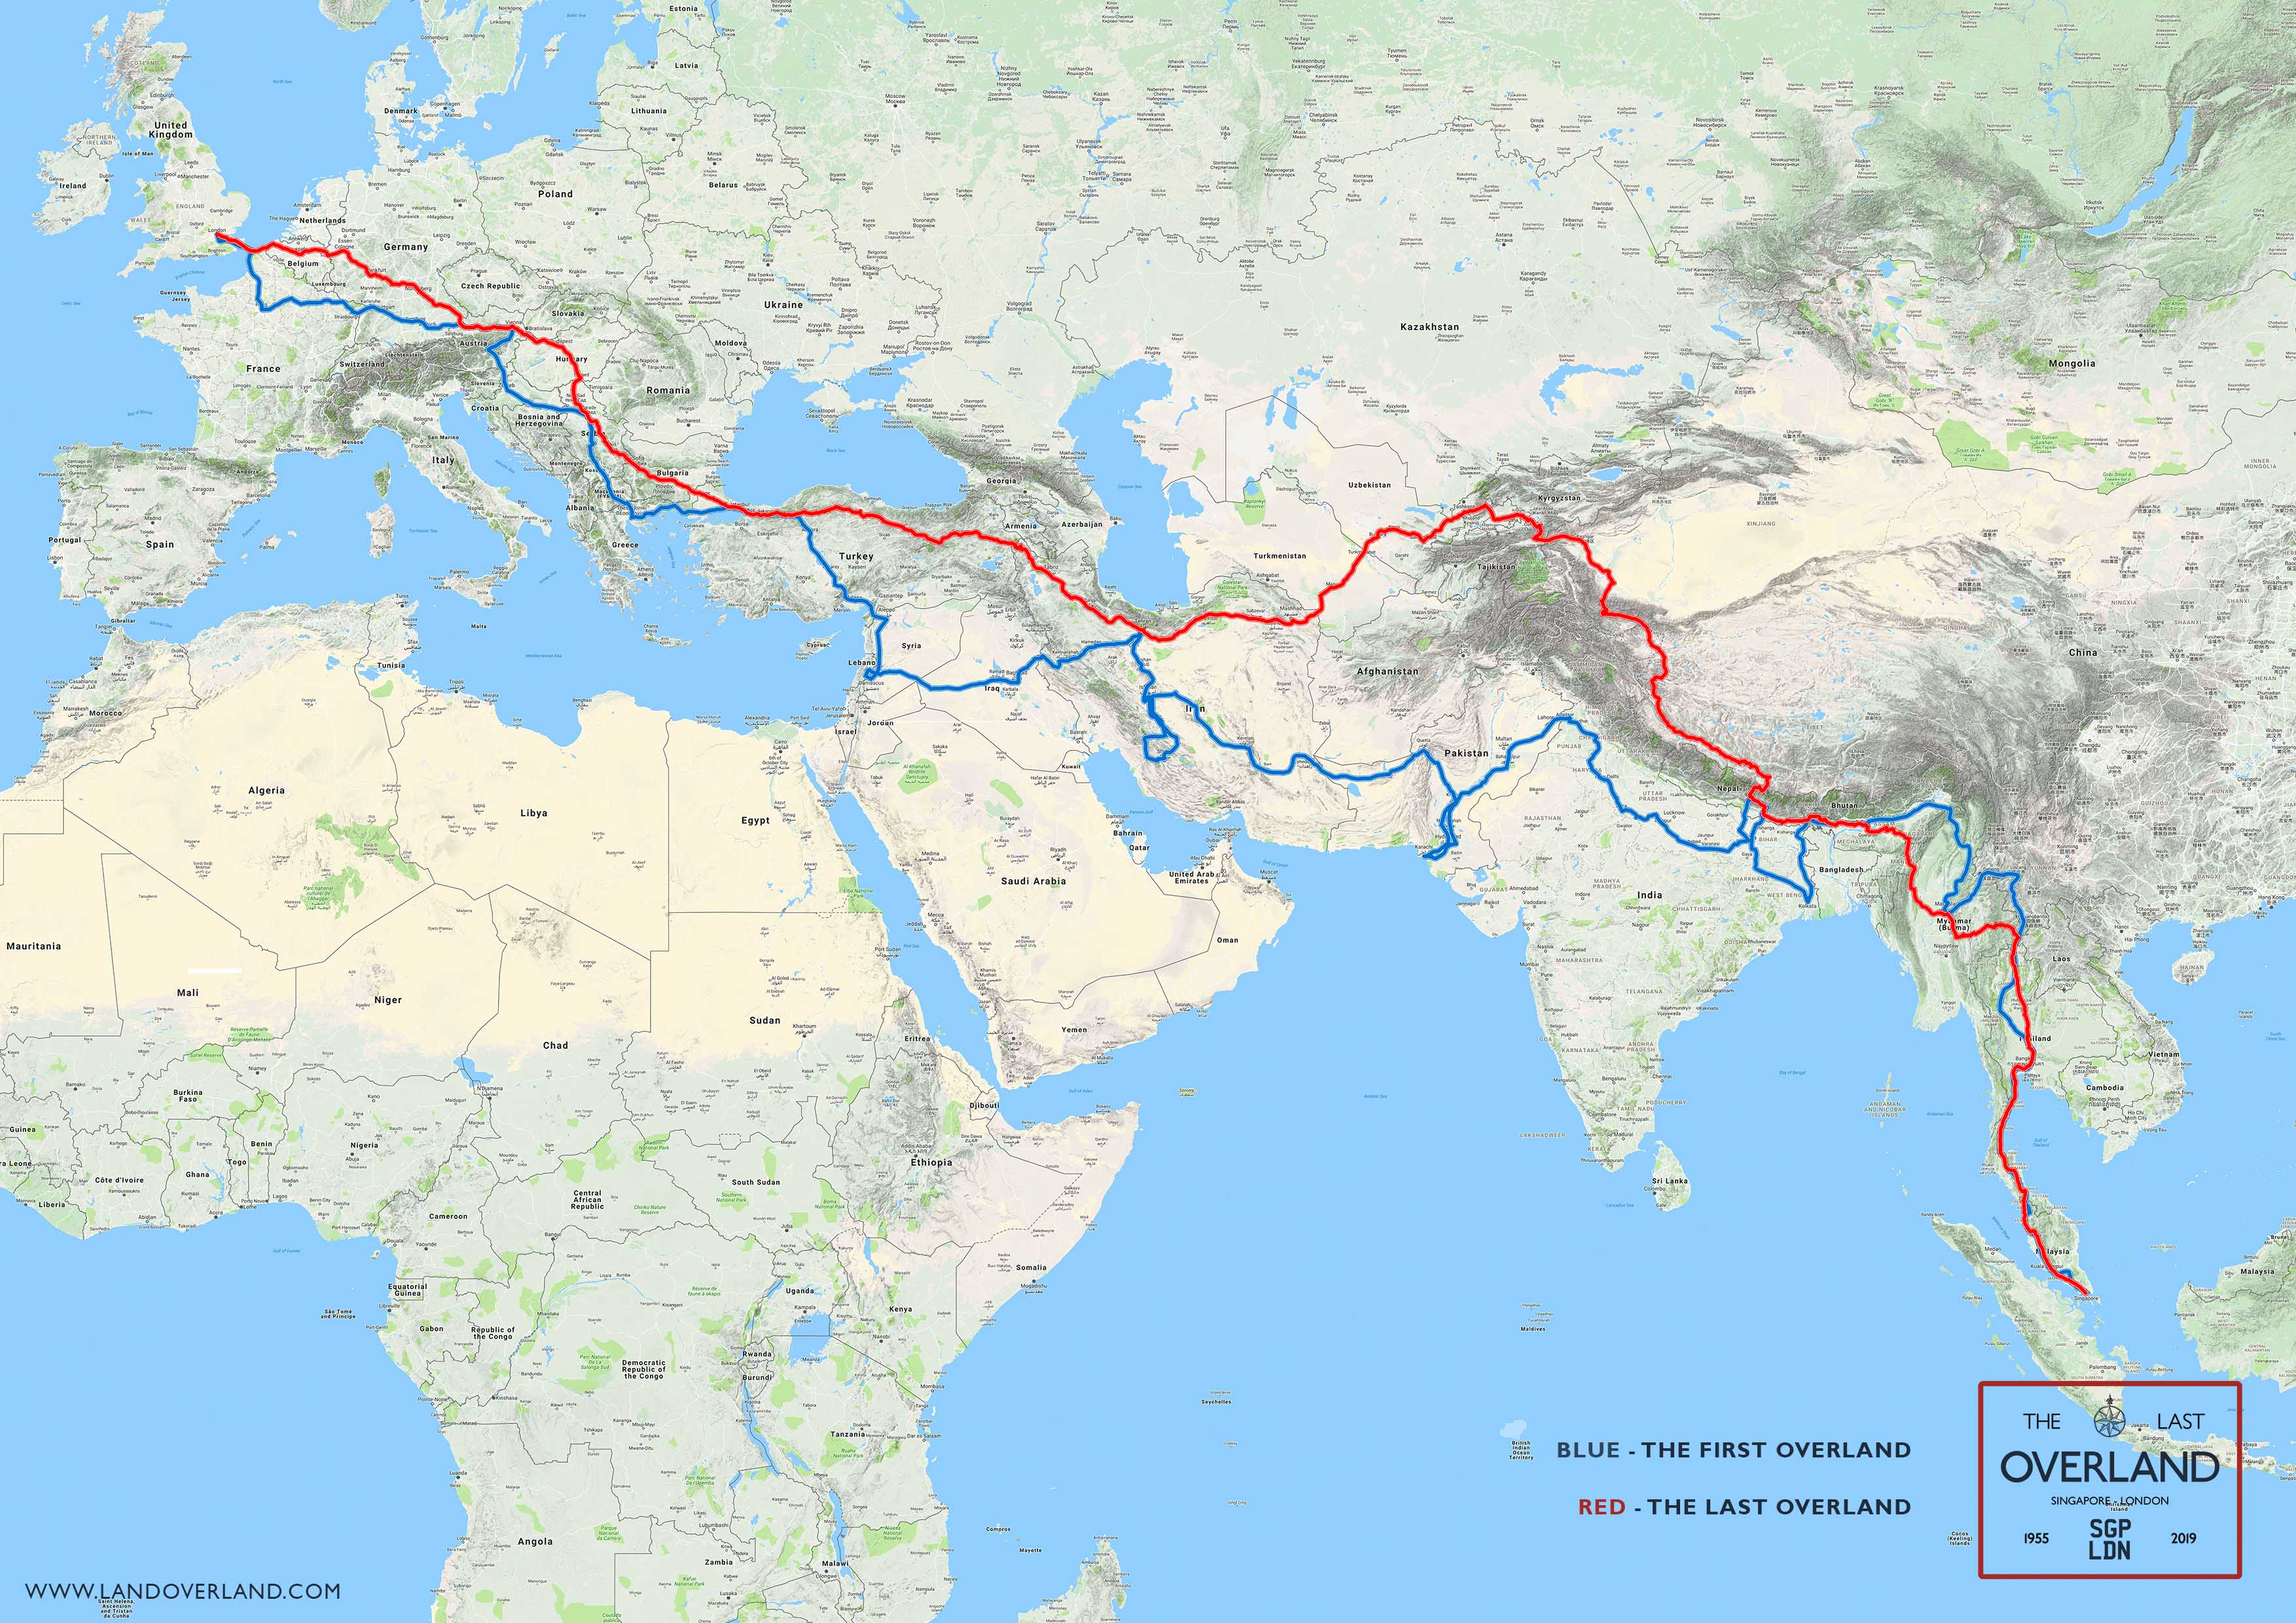 The Last Overland - historic road expedition across 20 cities from Singapore to London - Alvinology